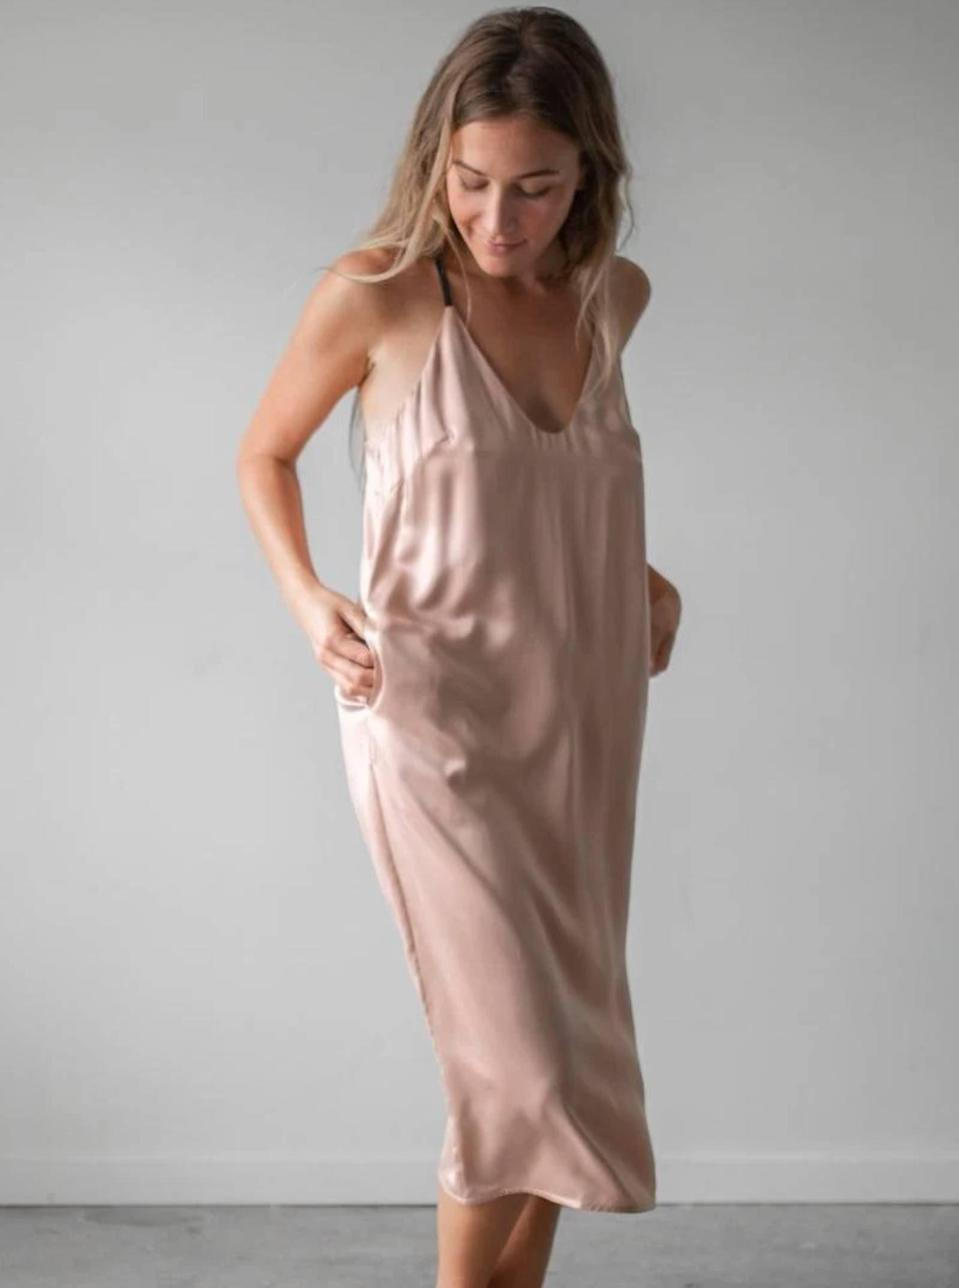 """Finally, you can wash your silk at home. More on why Lunya deserves a spot in your closet <a href=""""https://www.glamour.com/story/lunya-review-washable-silk-sets?mbid=synd_yahoo_rss"""" rel=""""nofollow noopener"""" target=""""_blank"""" data-ylk=""""slk:here"""" class=""""link rapid-noclick-resp"""">here</a>. $198, Lunya. <a href=""""https://www.lunya.co/products/washable-silk-slip-dress?"""" rel=""""nofollow noopener"""" target=""""_blank"""" data-ylk=""""slk:Get it now!"""" class=""""link rapid-noclick-resp"""">Get it now!</a>"""